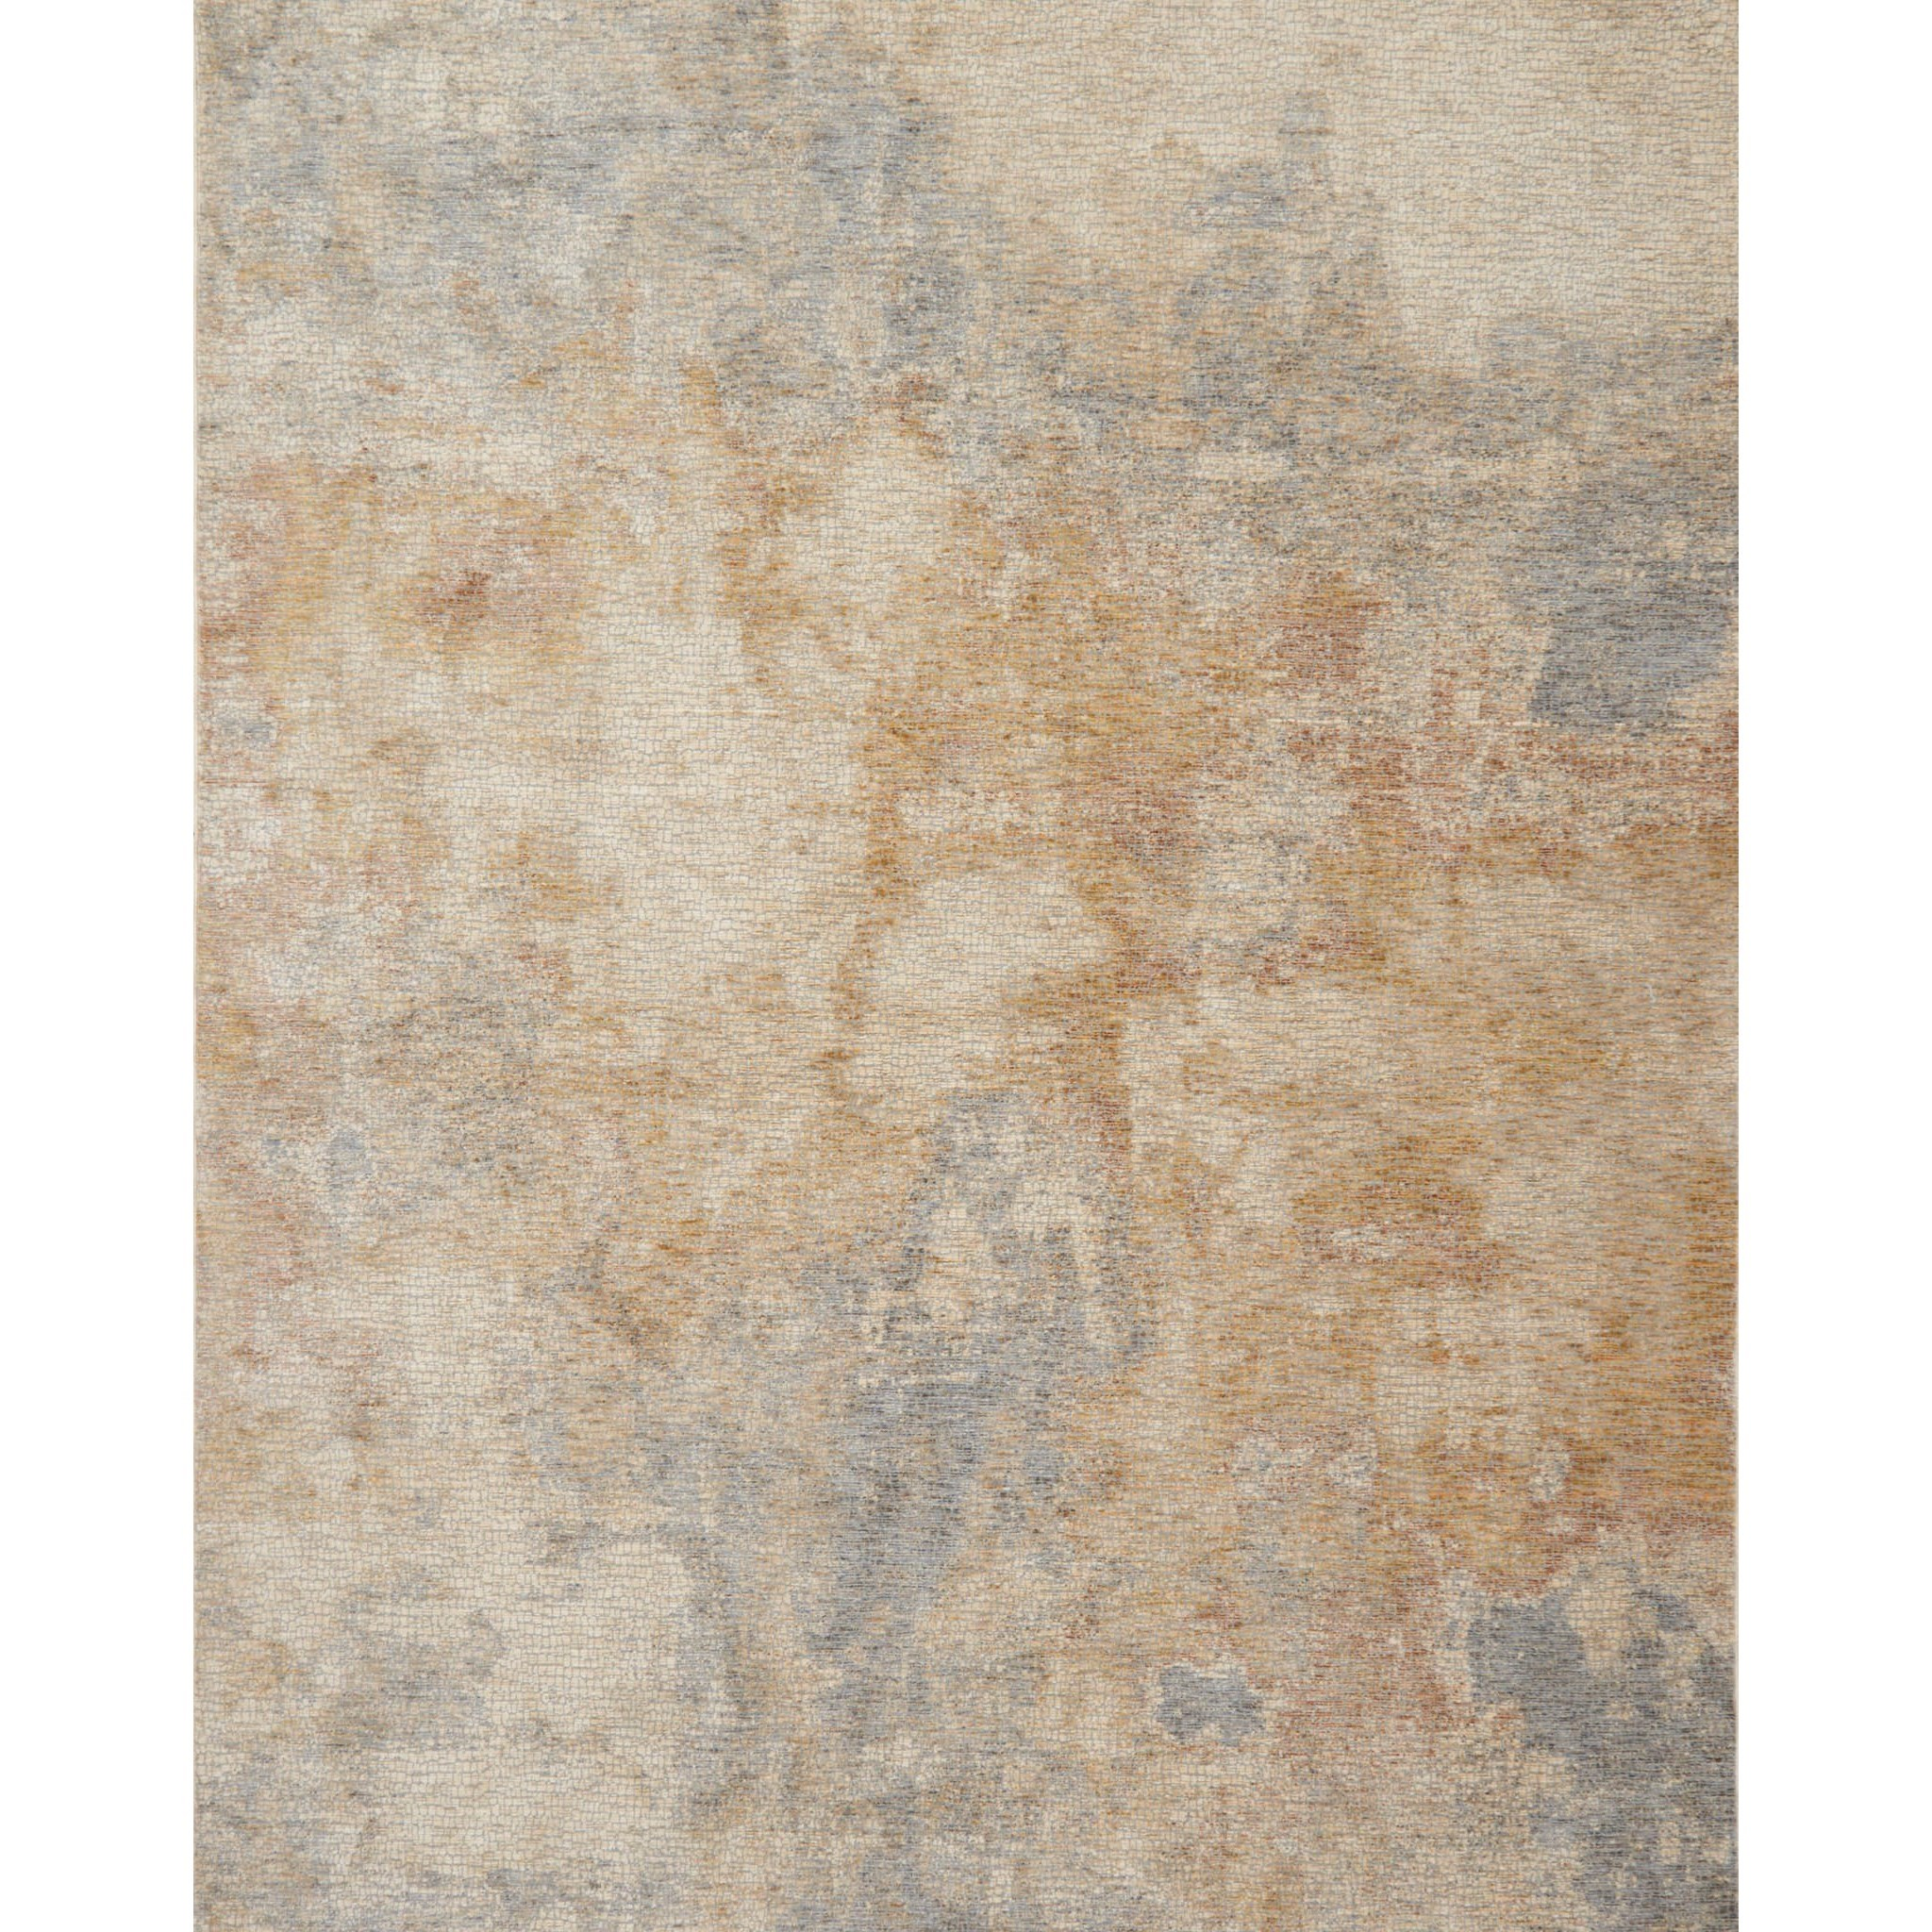 """Porcia 12'-0"""" x 15'-0"""" Area Rug by Loloi Rugs at Sprintz Furniture"""